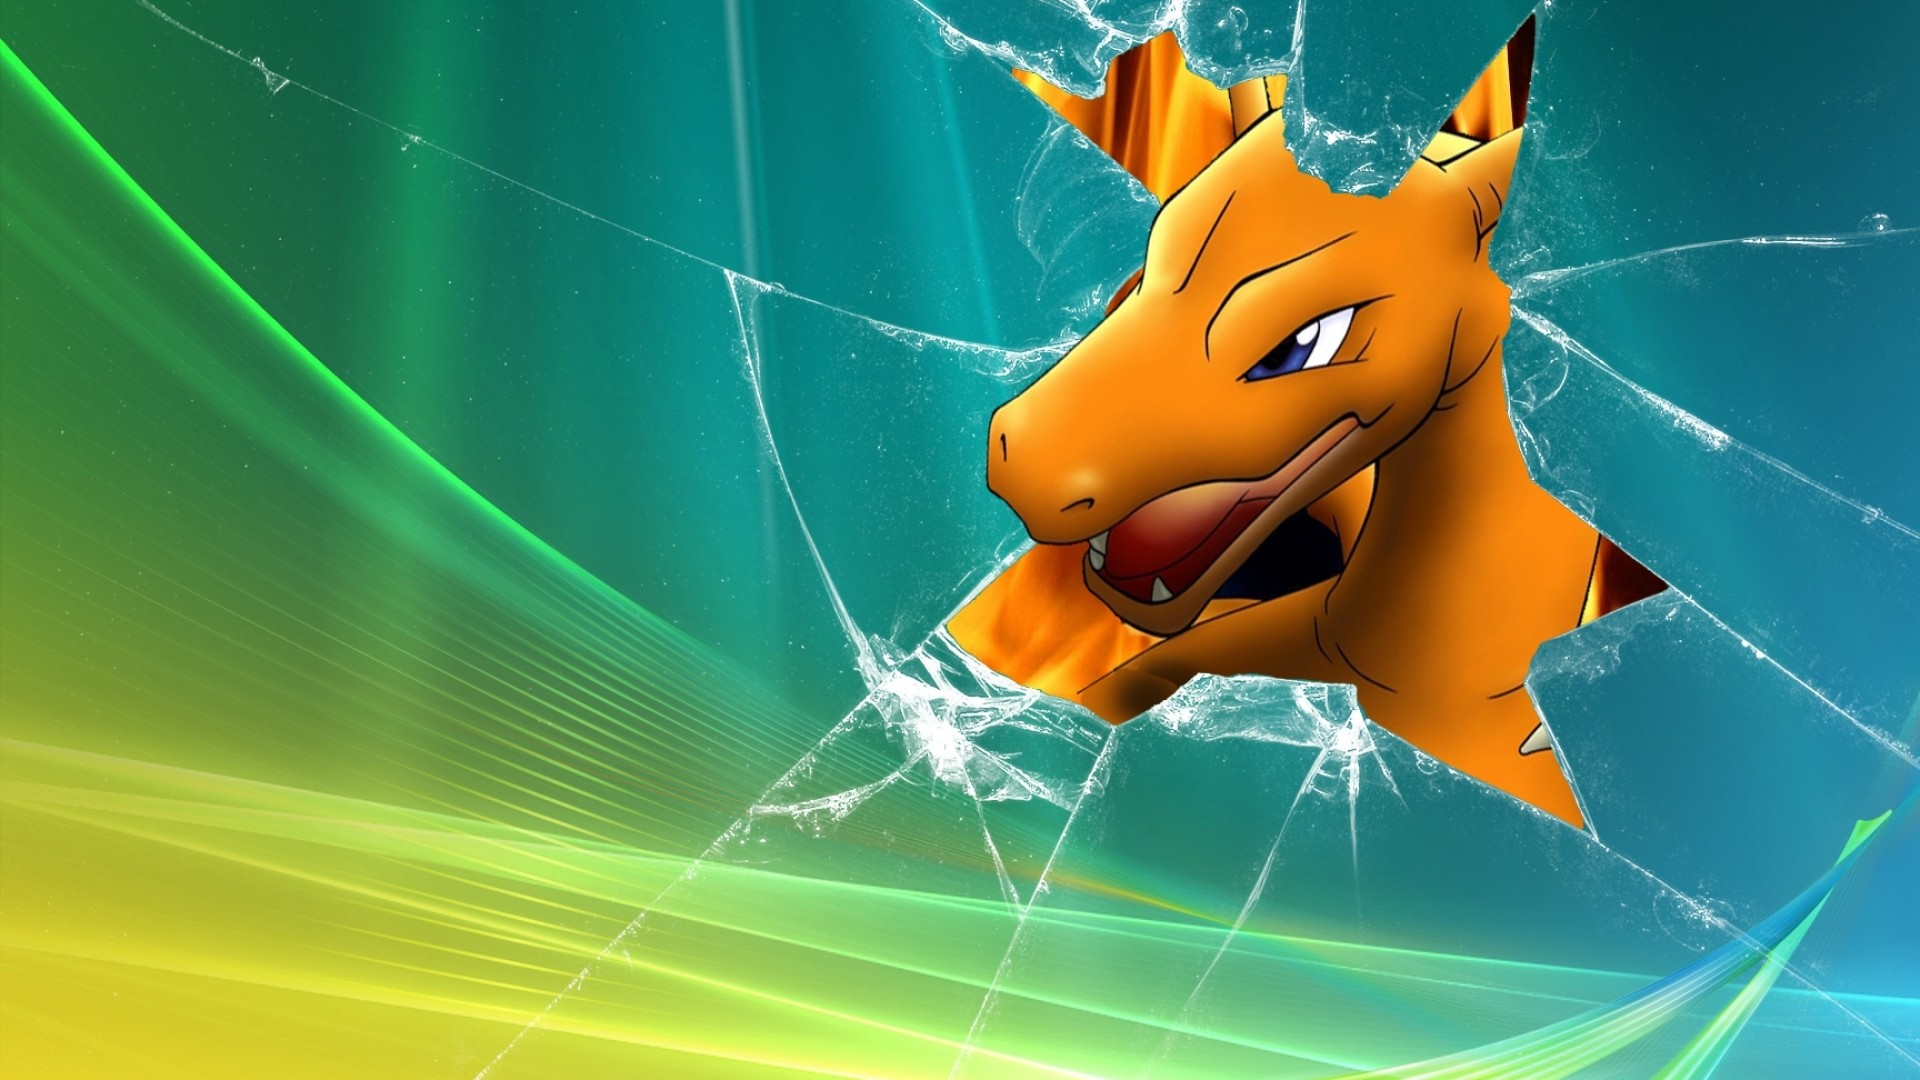 charizard computer wallpaper 64930